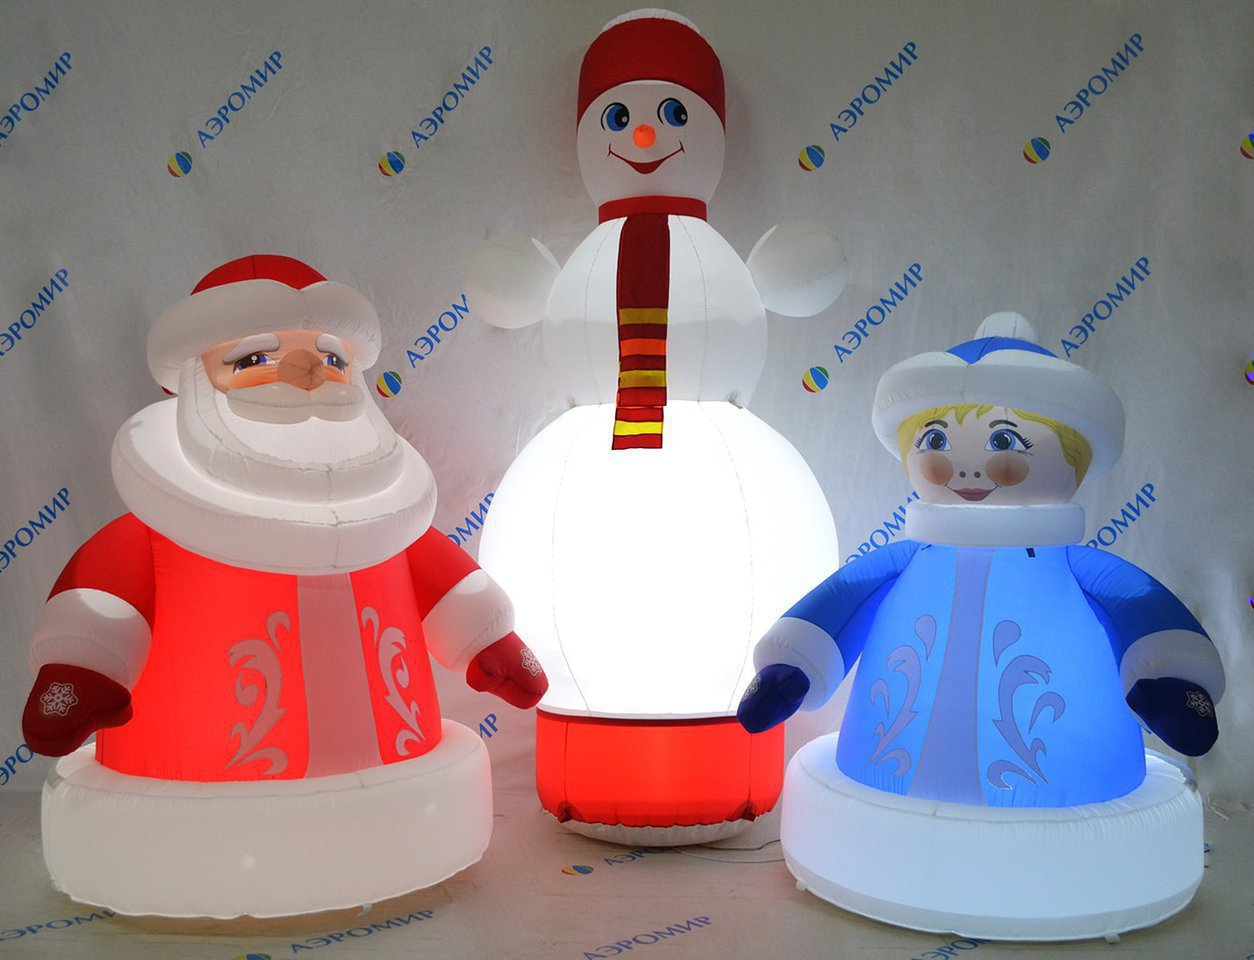 Set of 3 inflatable Christmas figures (economy version): Father Frost, Snowman and Snow Maiden